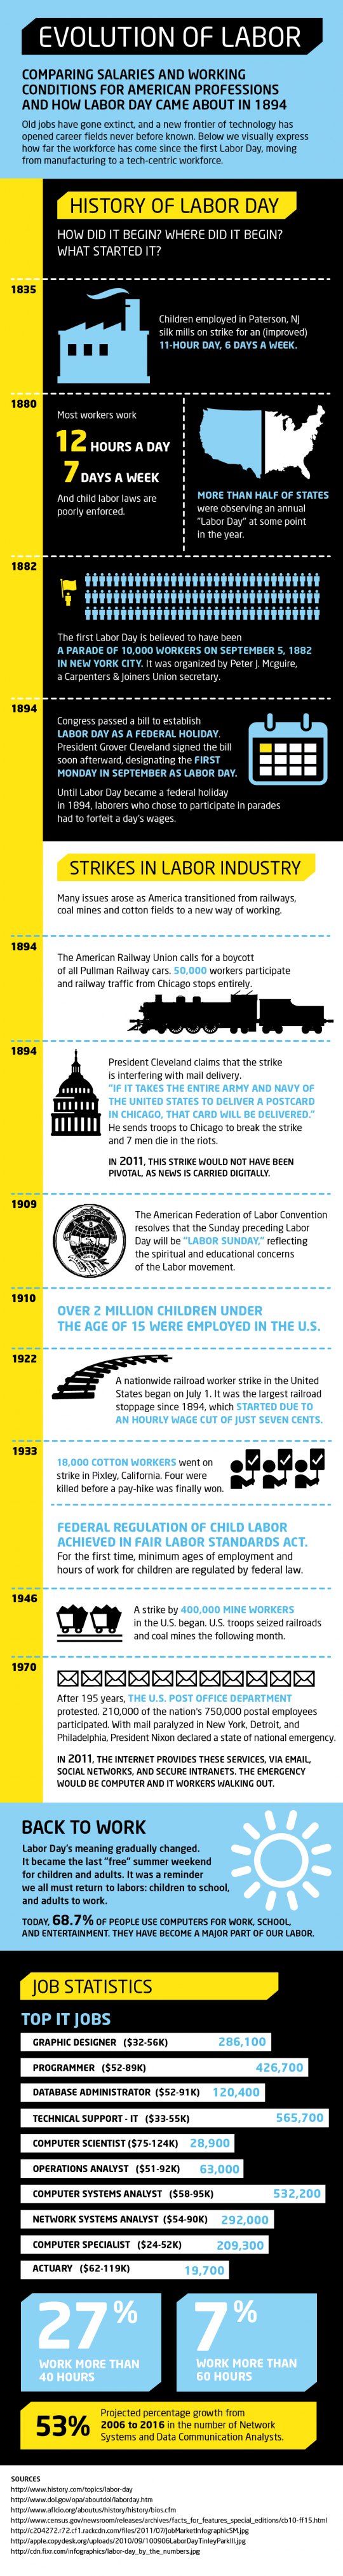 Evolution of Labor